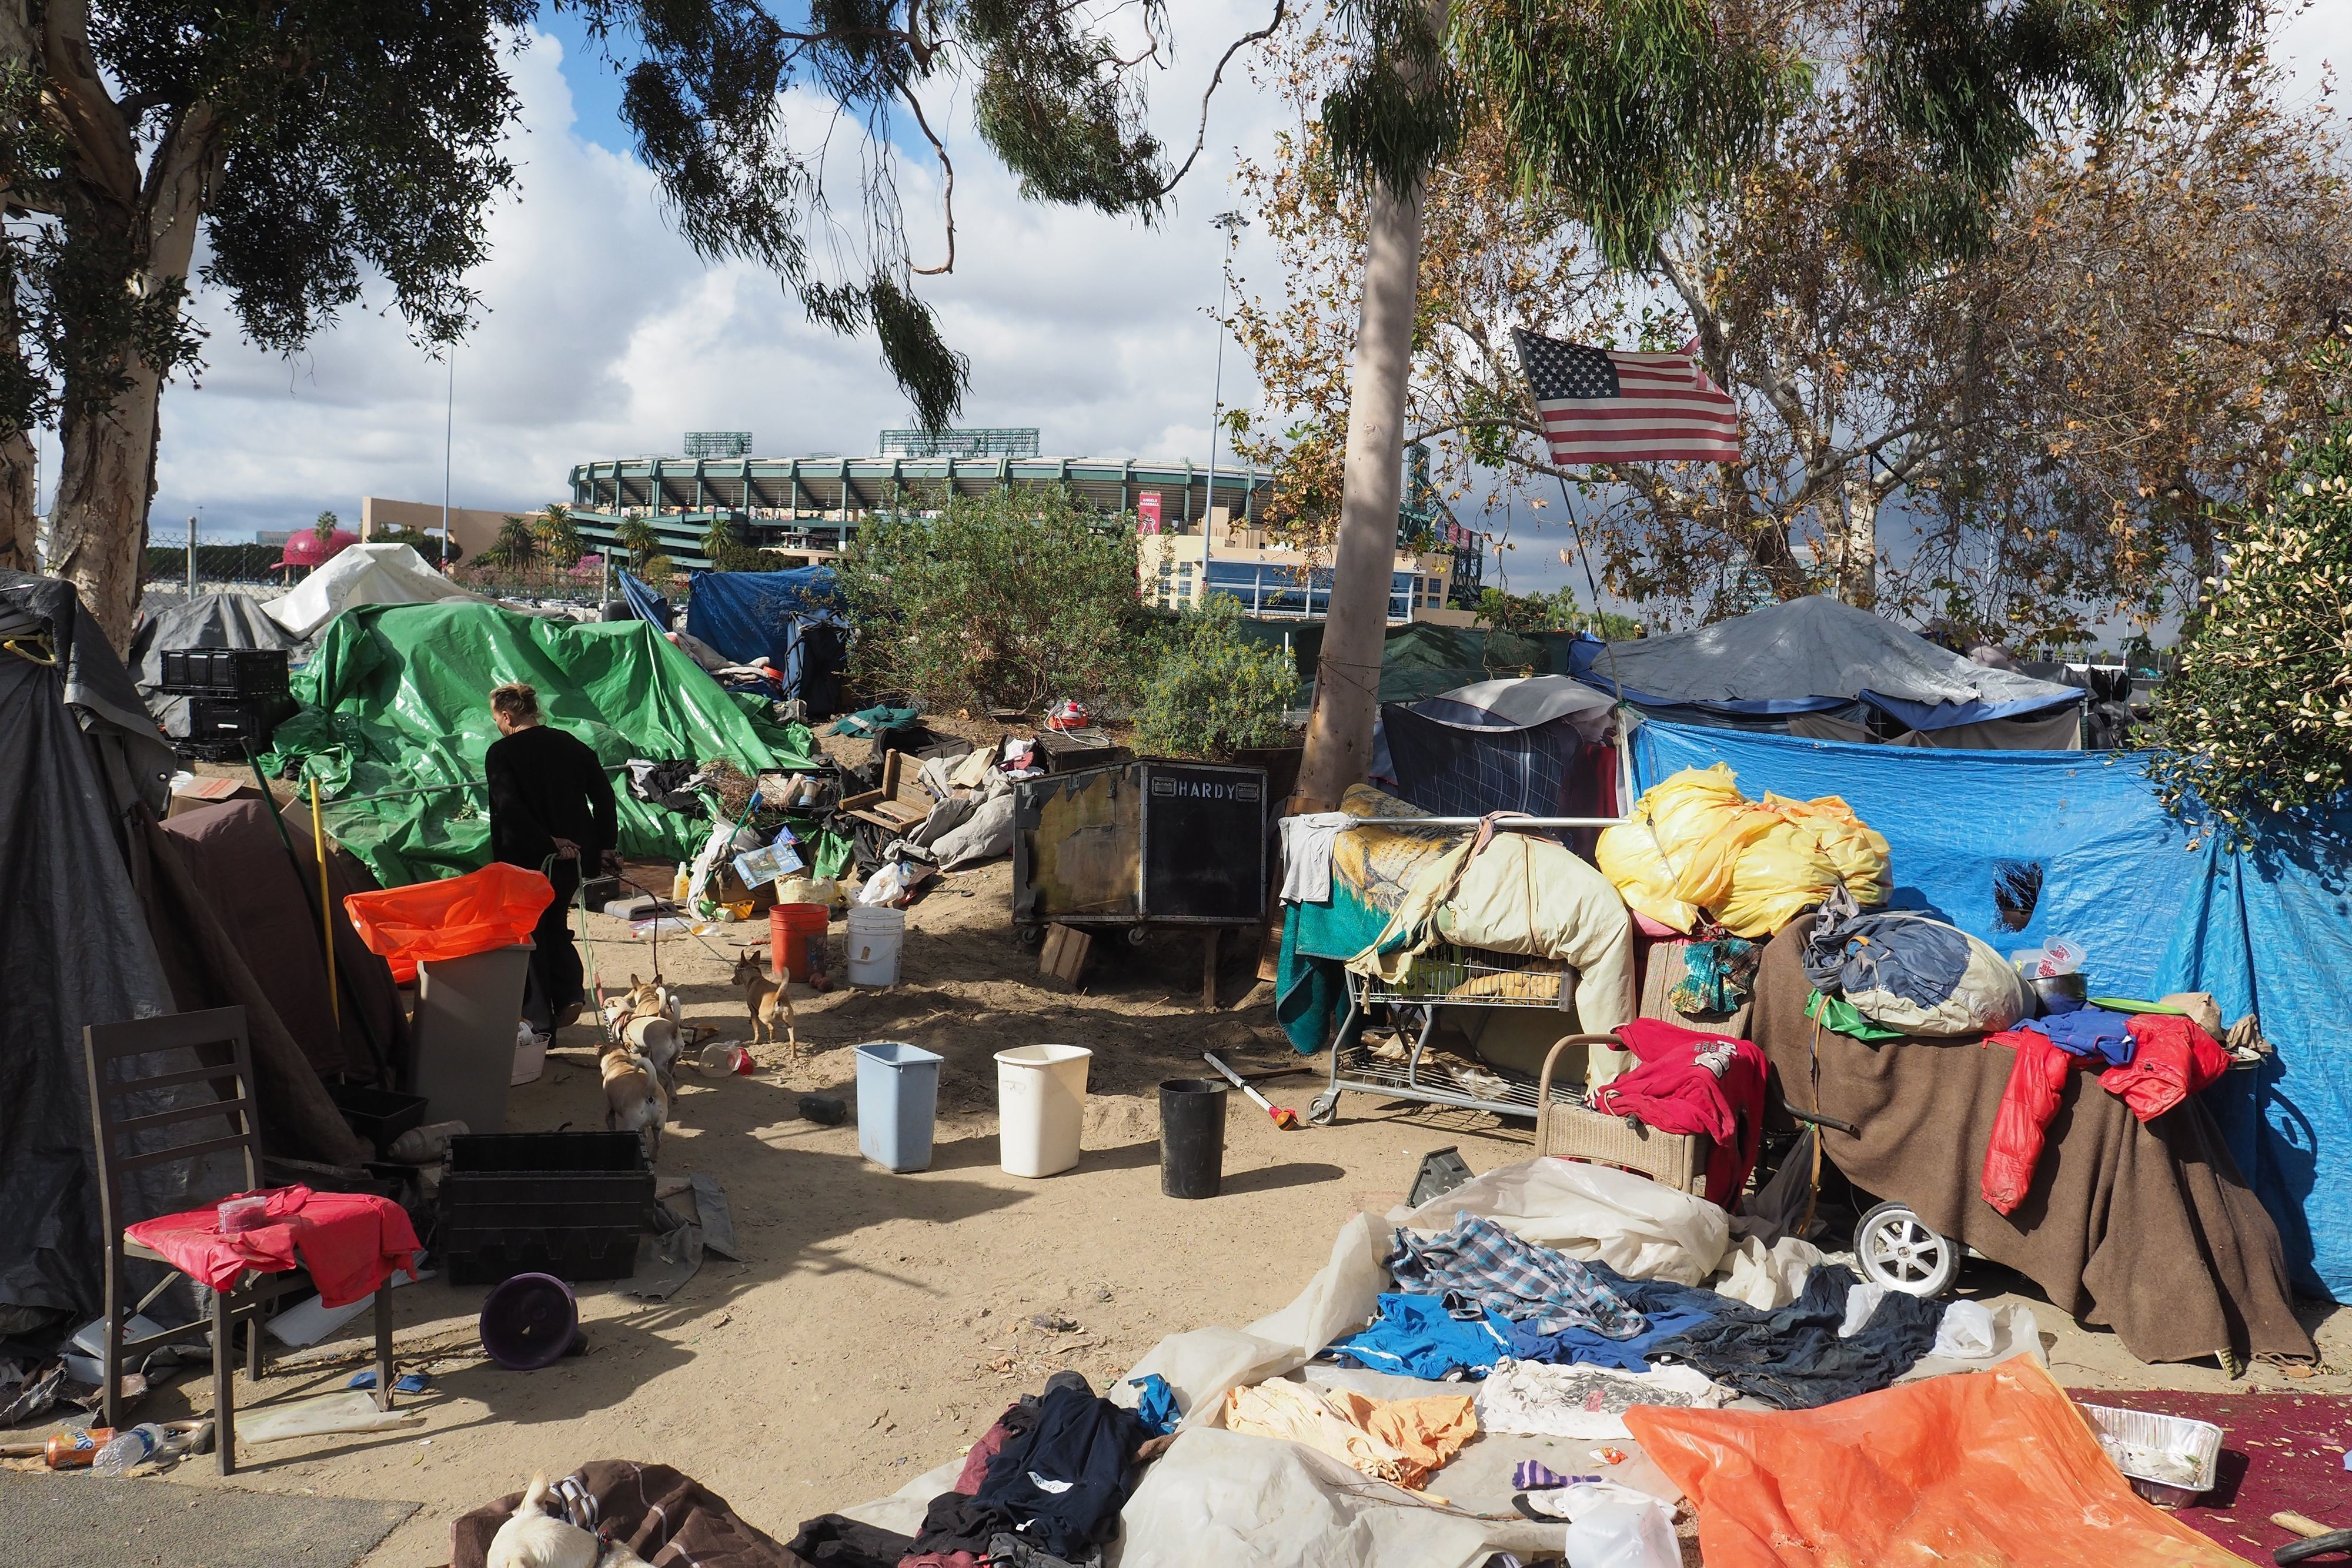 Faced with a lack of affordable housing, Orange County's homeless residents camped near the Santa Ana riverbed until authorities forced them to leave.